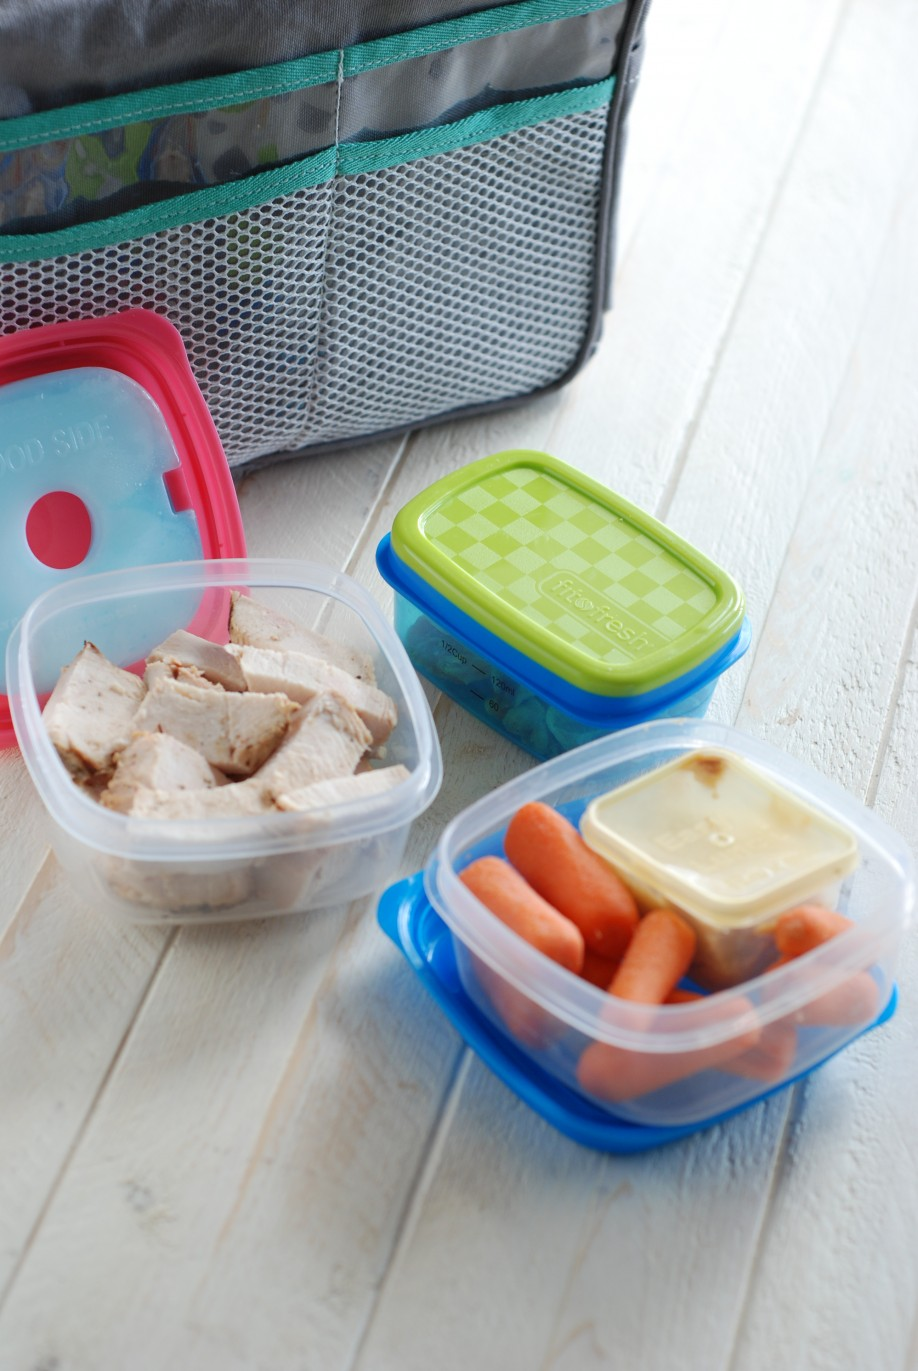 Fit & Fresh containers and my Cooler Purse Organizer are the perfect combo for daily food prep!